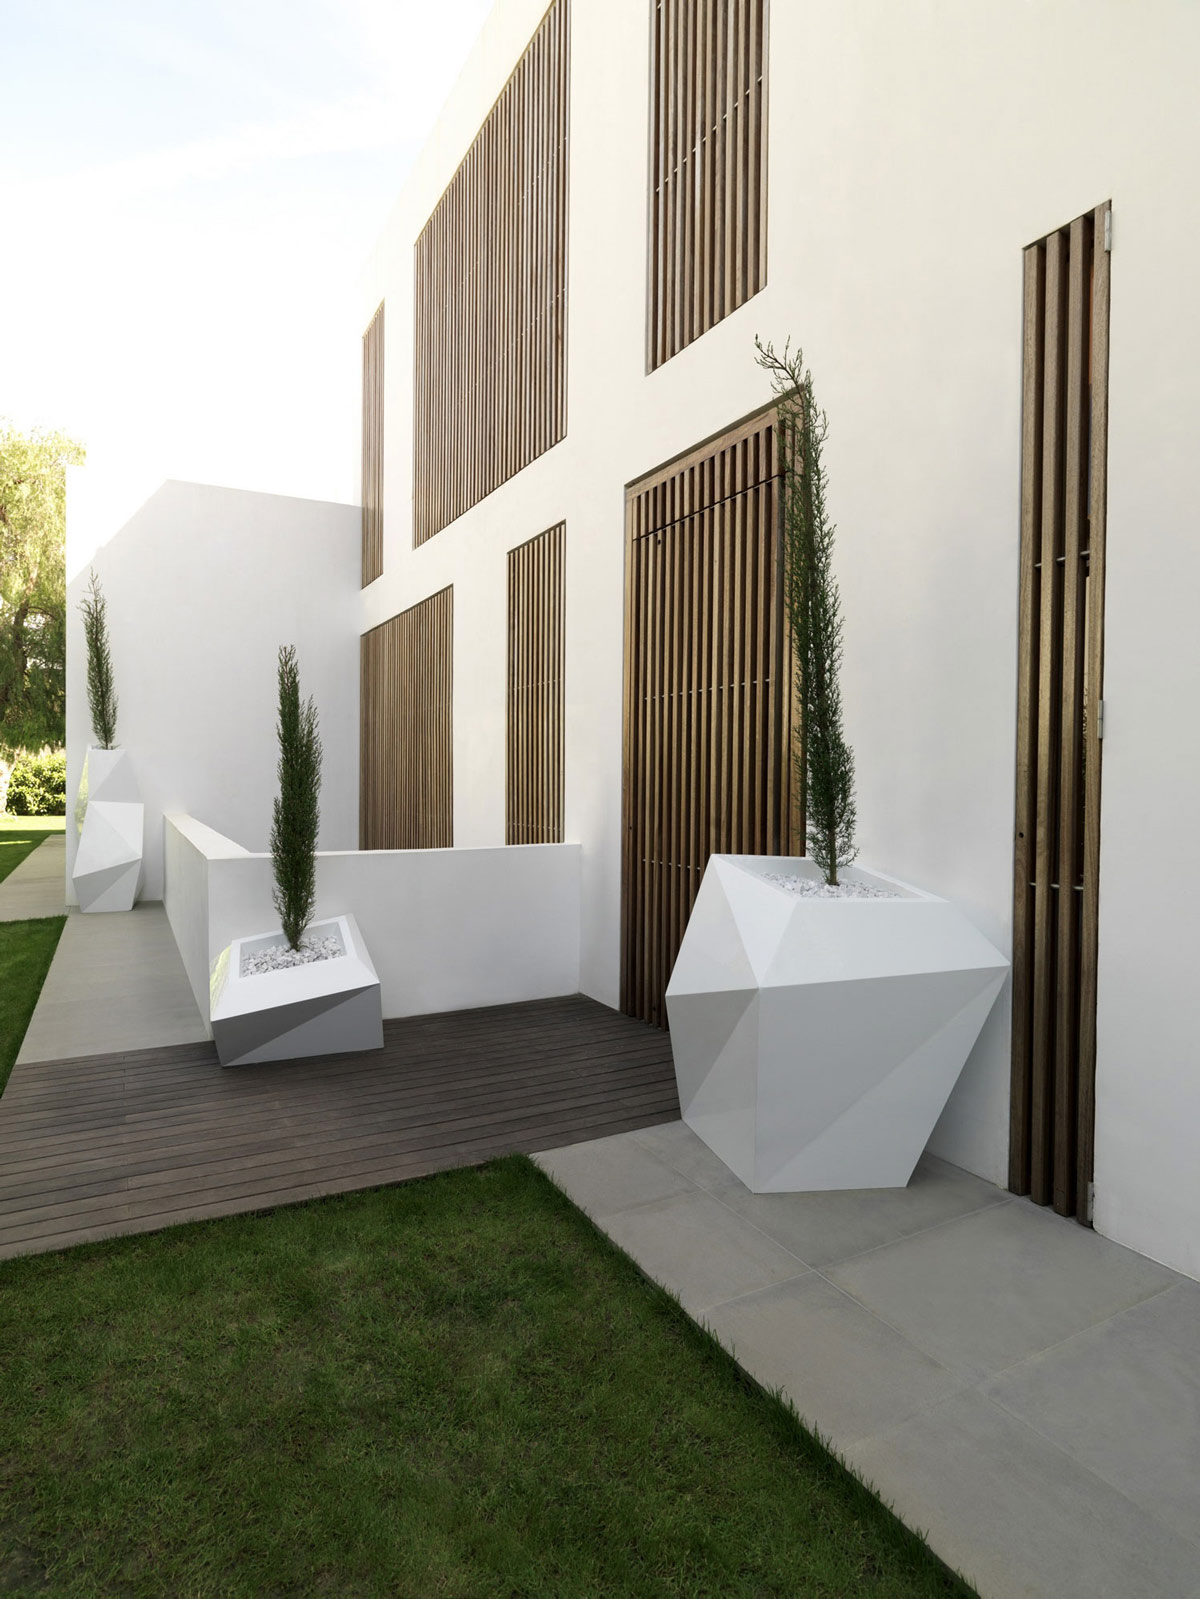 Futuristic Garden Furniture, Contemporary Home in Valencia, Spain